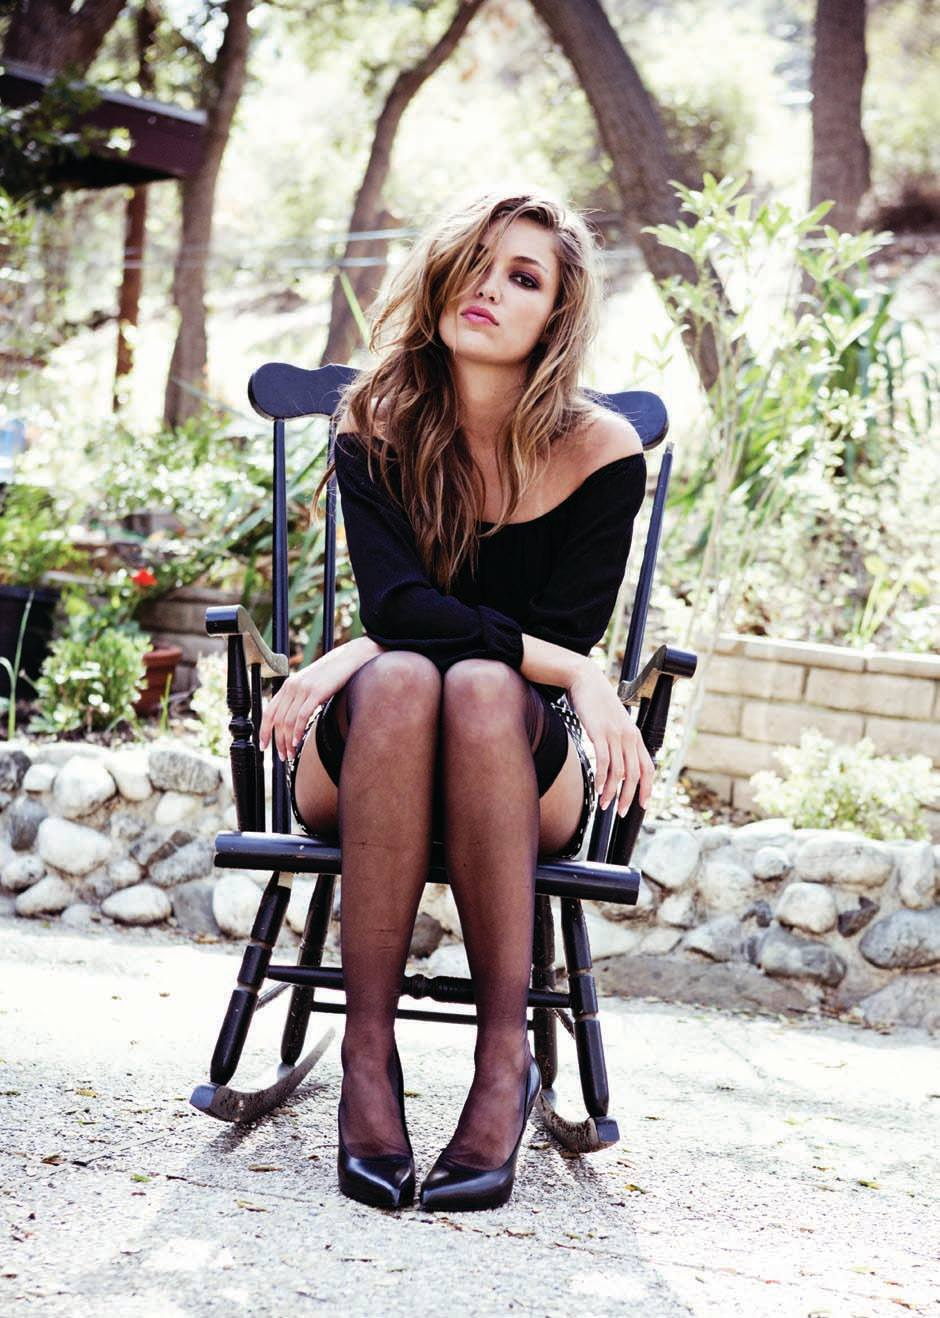 Discussion on this topic: Francoise Yip, lili-simmons/